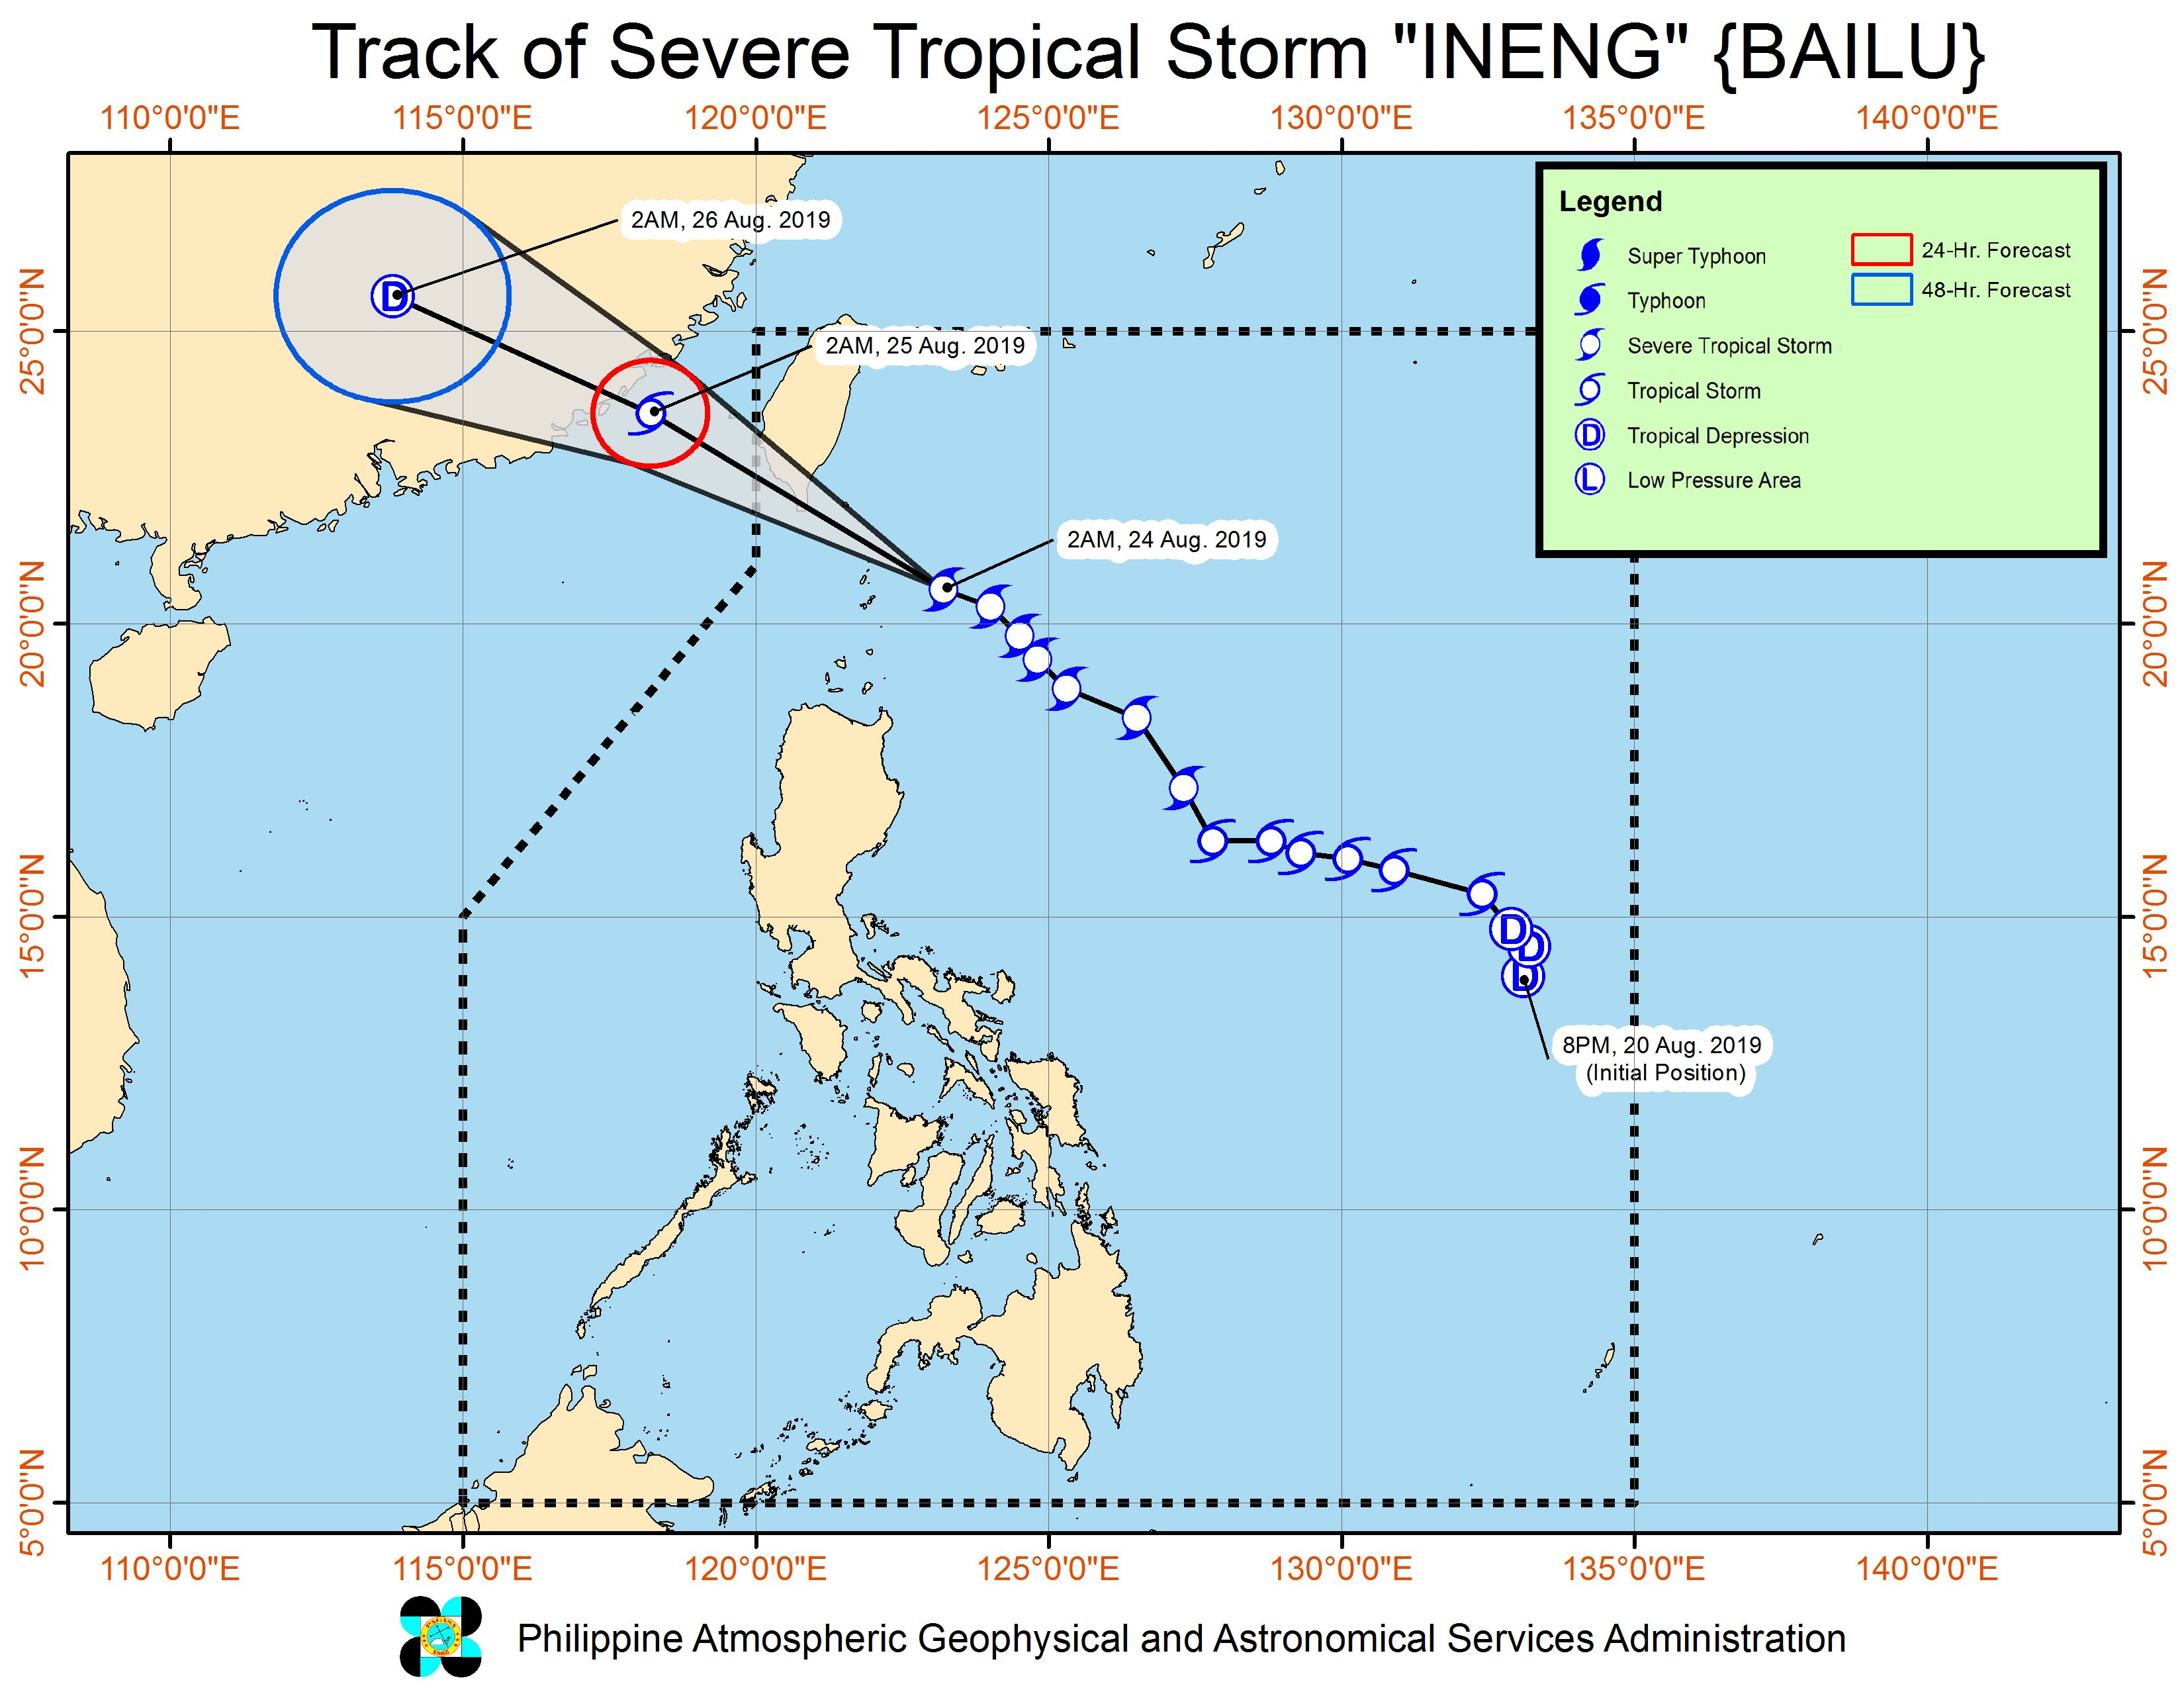 Forecast track of Severe Tropical Storm Ineng (Bailu) as of August 24, 2019, 5 am. Image from PAGASA